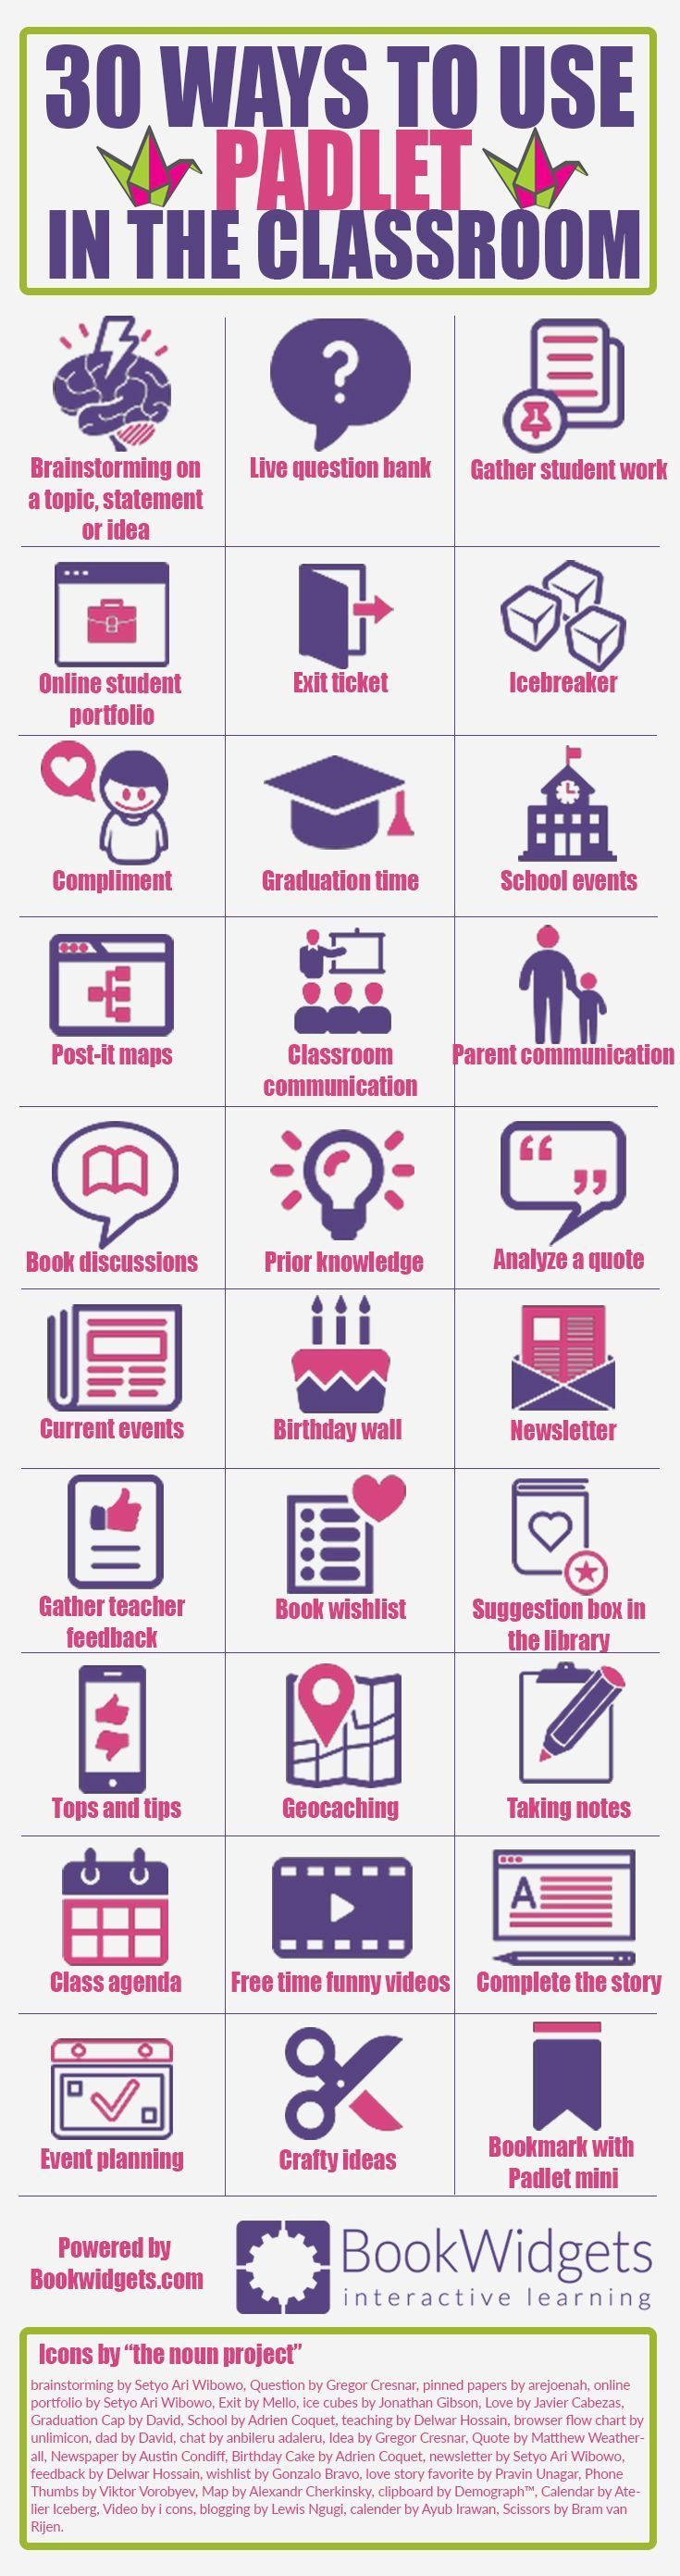 30 creative ways to use Padlet in the classroom [infographic]